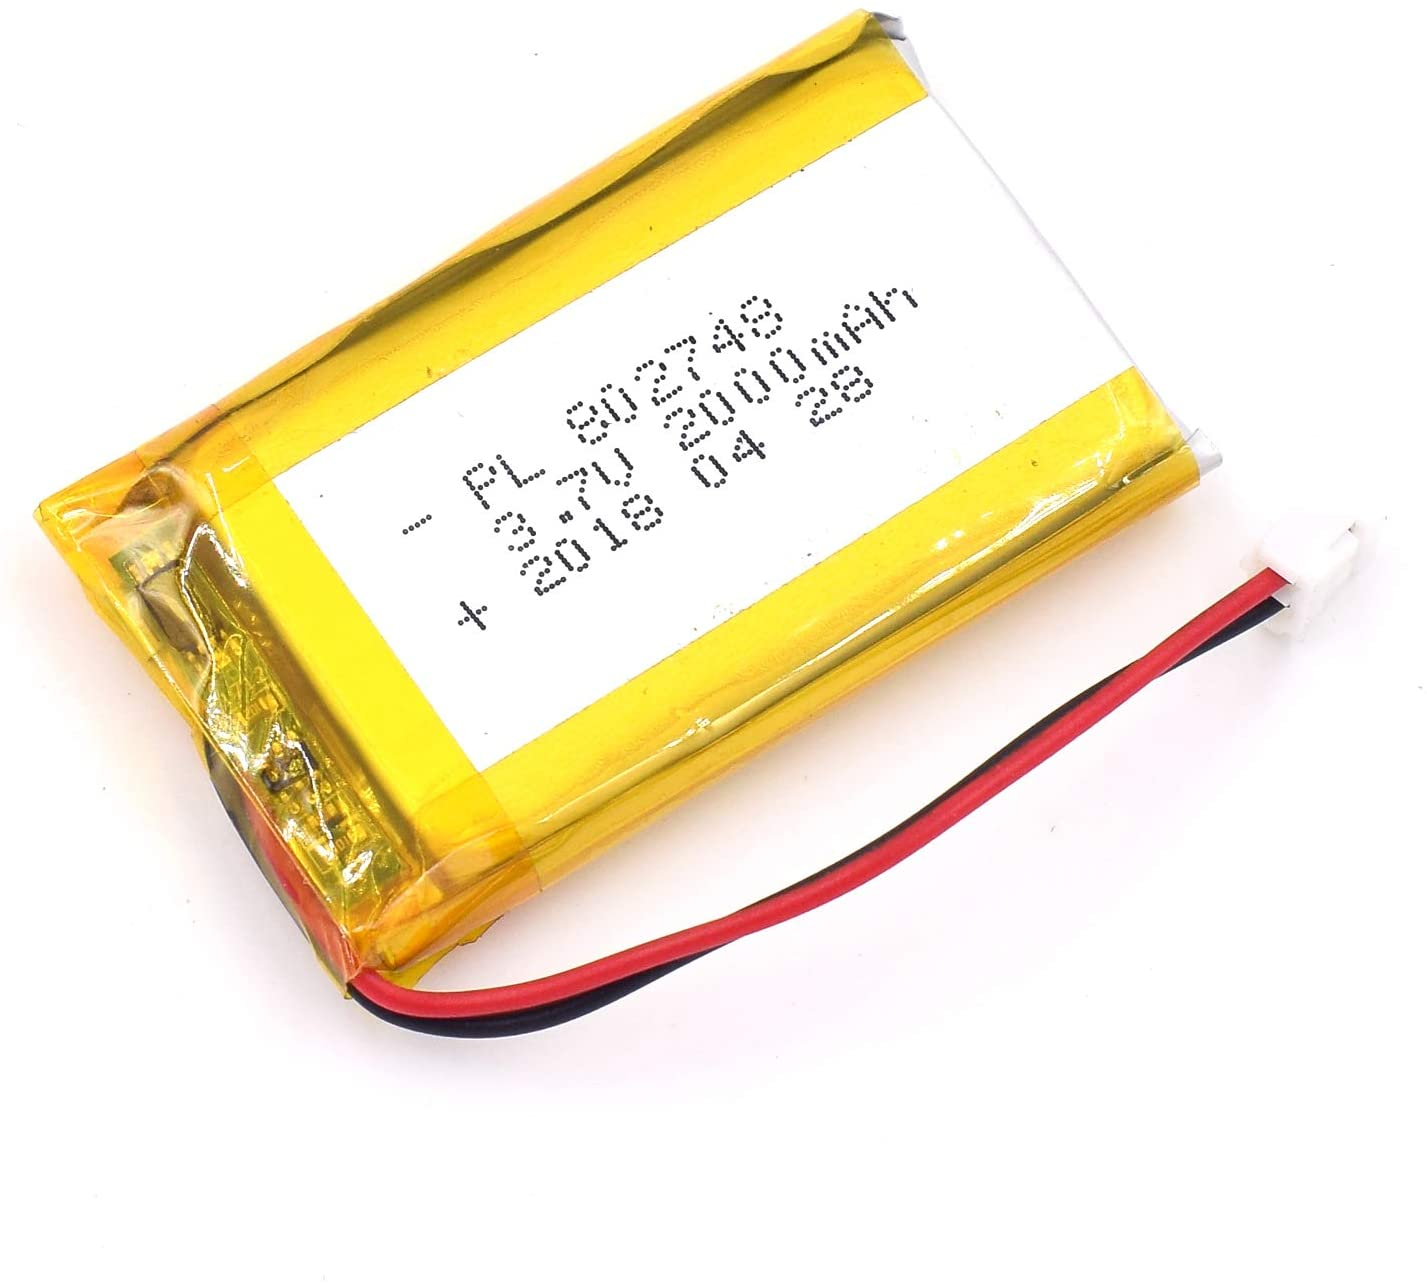 3.7V 1225mAh 802748 Lipo Battery Rechargeable Lithium Polymer ion Battery Pack with JST Connector